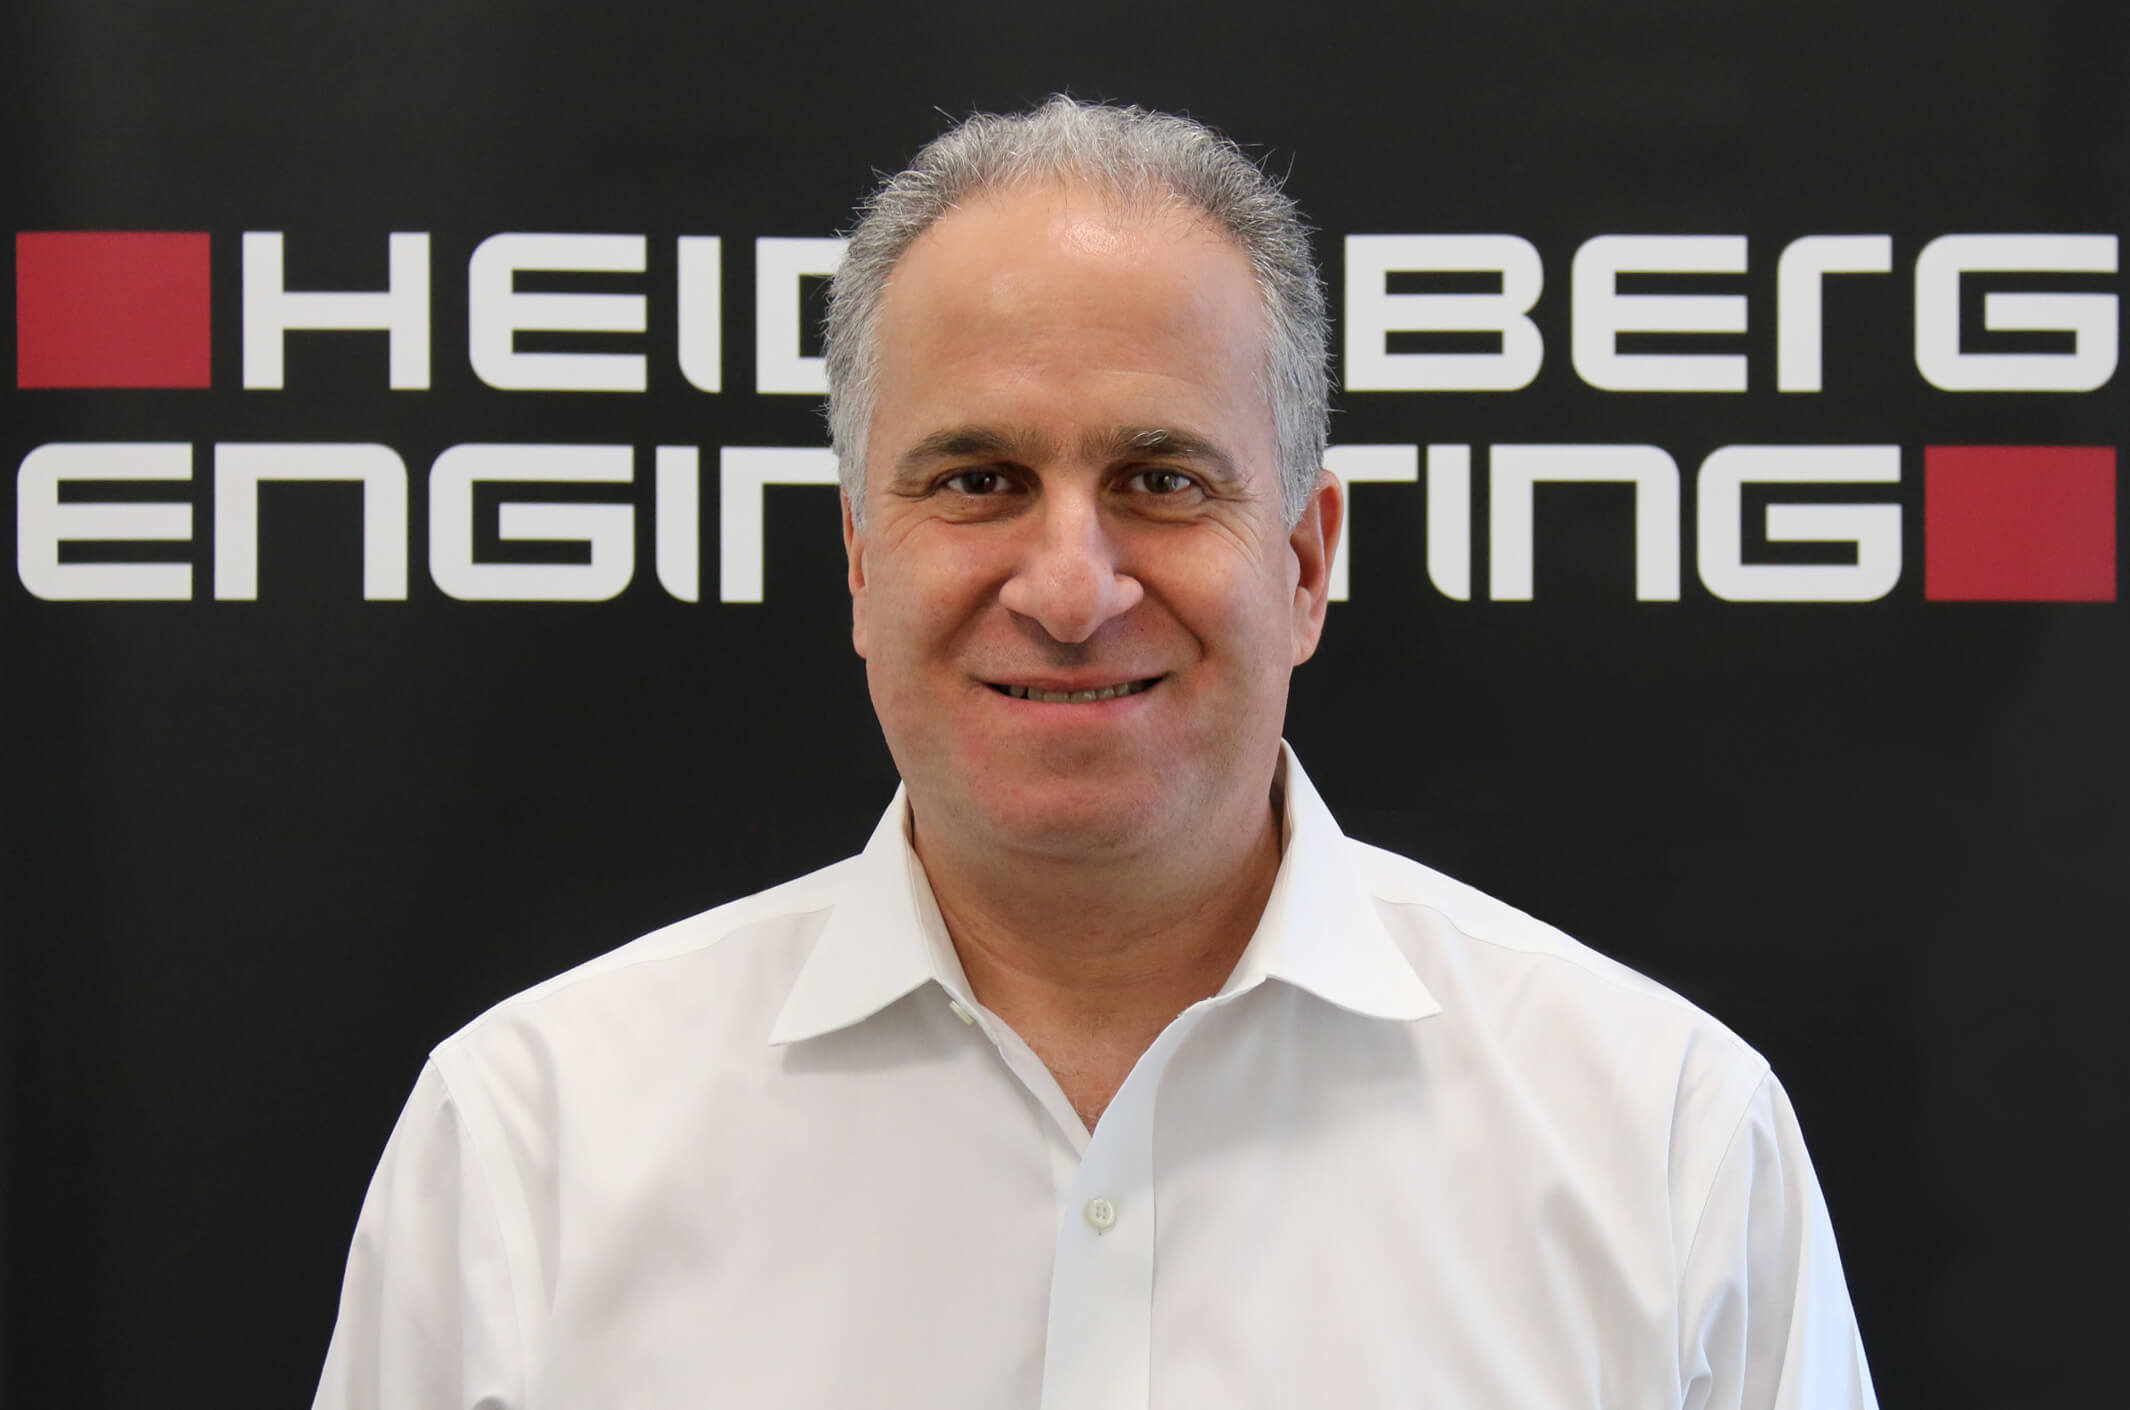 New U.S. General Manager for Heidelberg Engineering Inc.